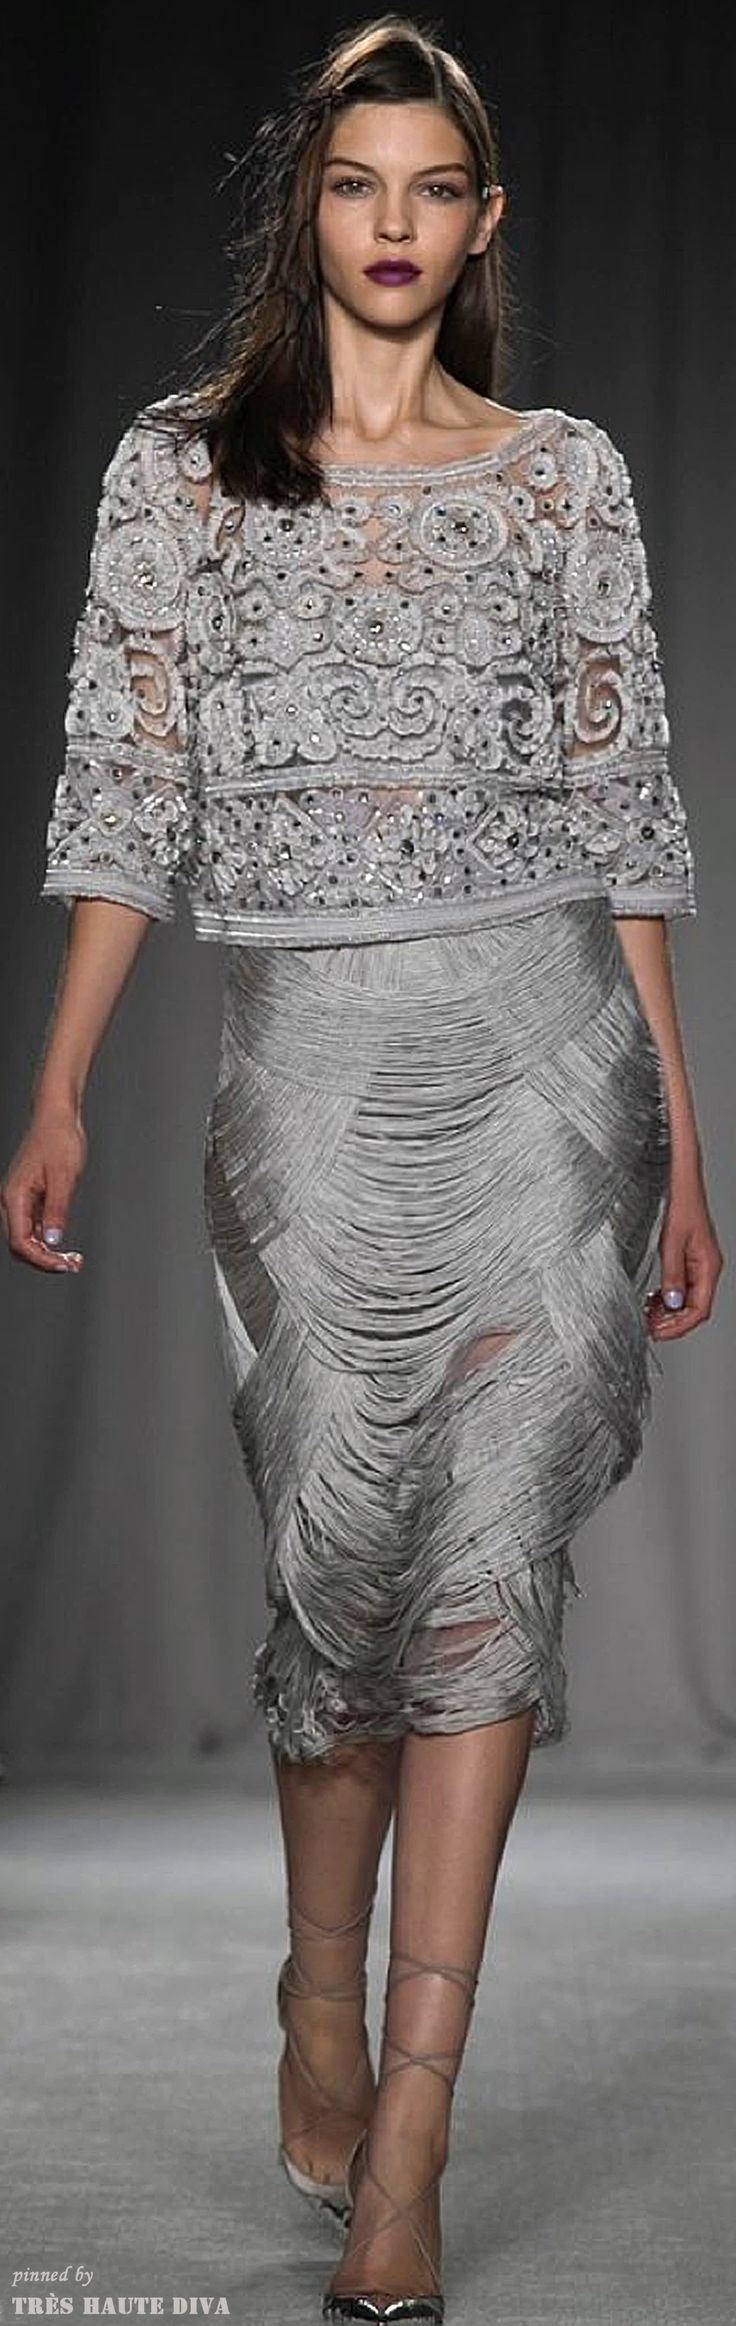 Marchesa 2014 RTW  (This is the top that Mary Queen of Scots is wearing in the episode when she tells Francis of the prophecy and why she can't marry him! )